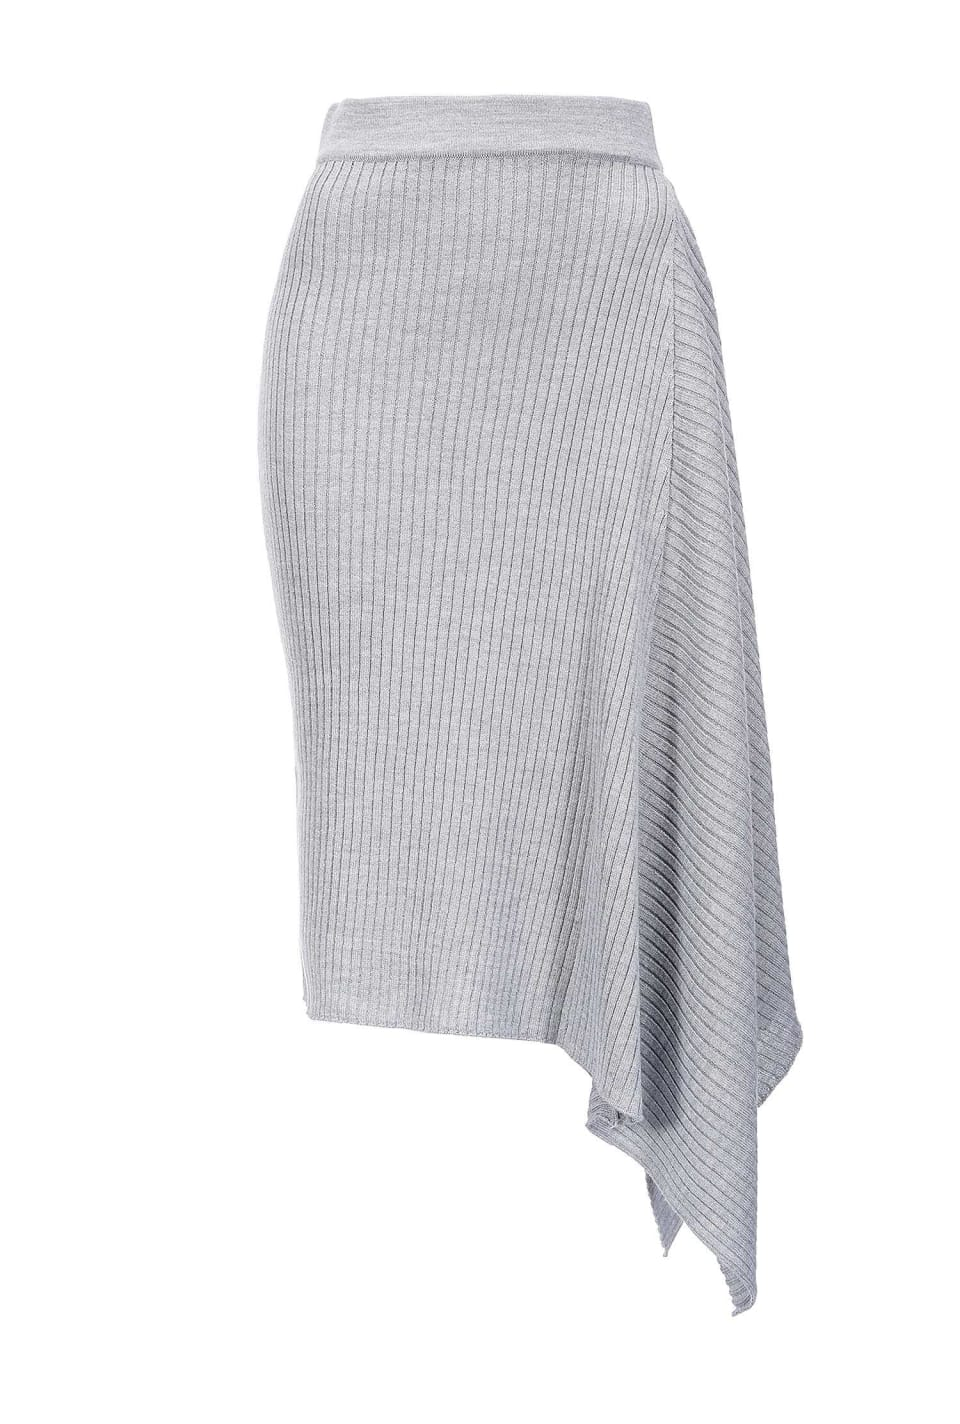 Midi-length knitted skirt